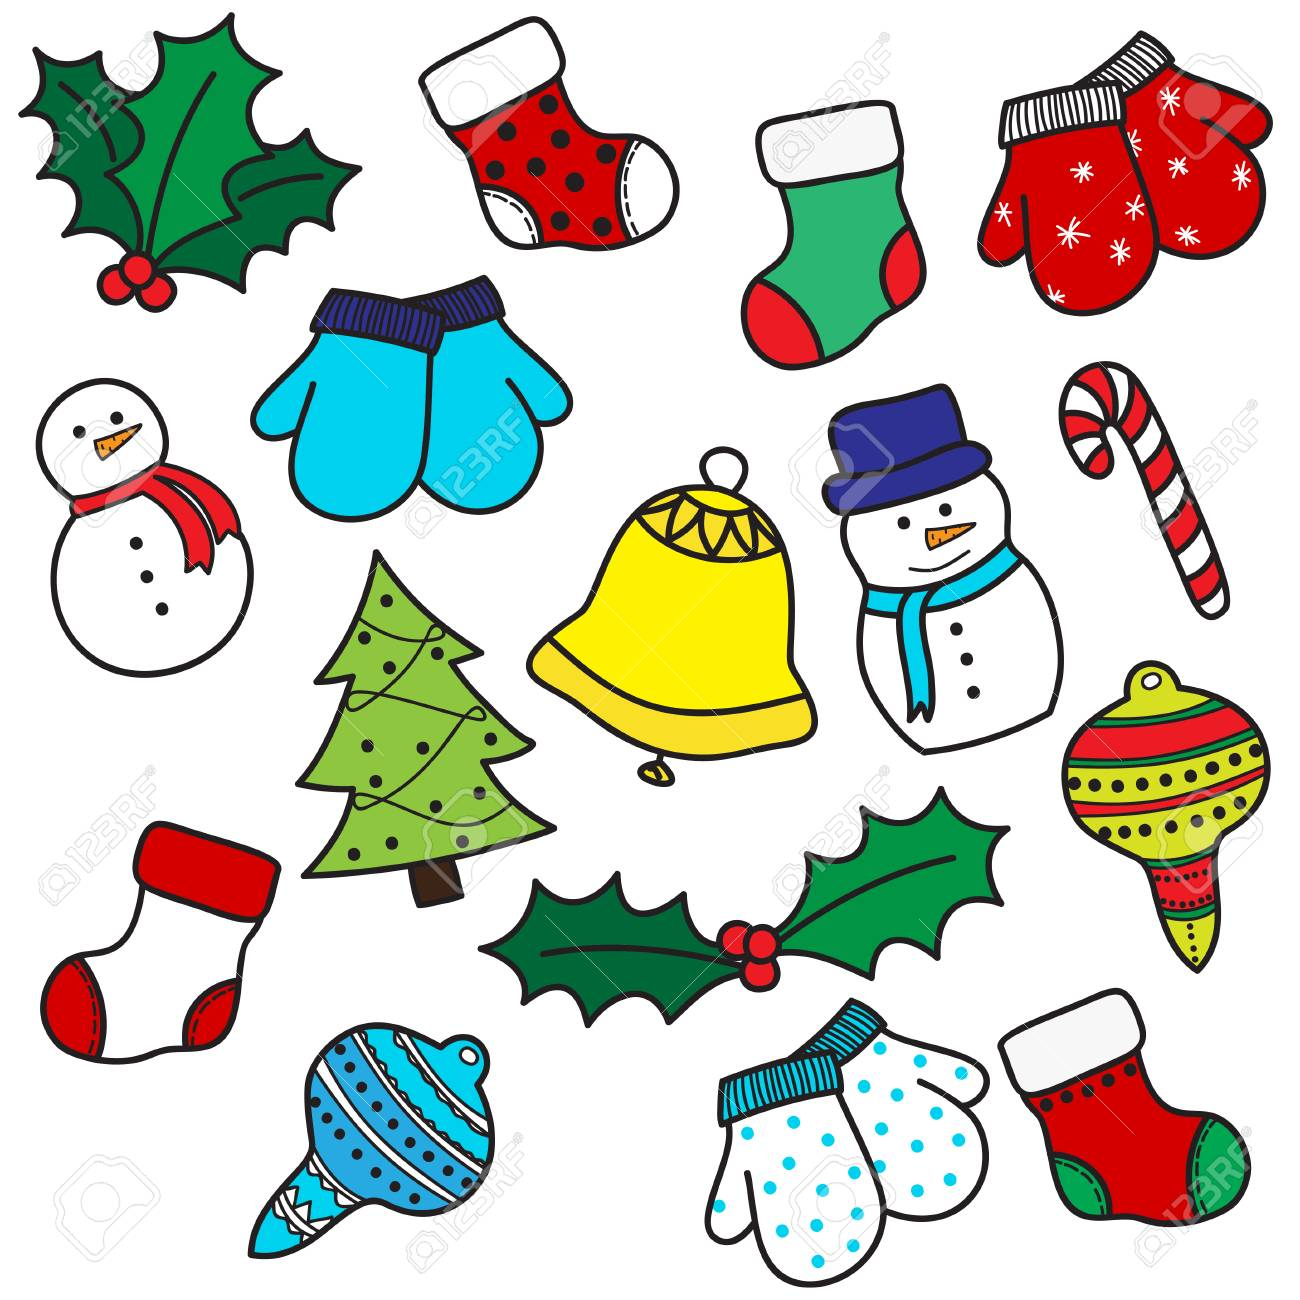 Set of colorful hand drawh cartoon Christmas elements - stockings, mittens, candy cane, holly berries, ornaments, bell, snowman and xmas tree. Vector illustration - 53527601